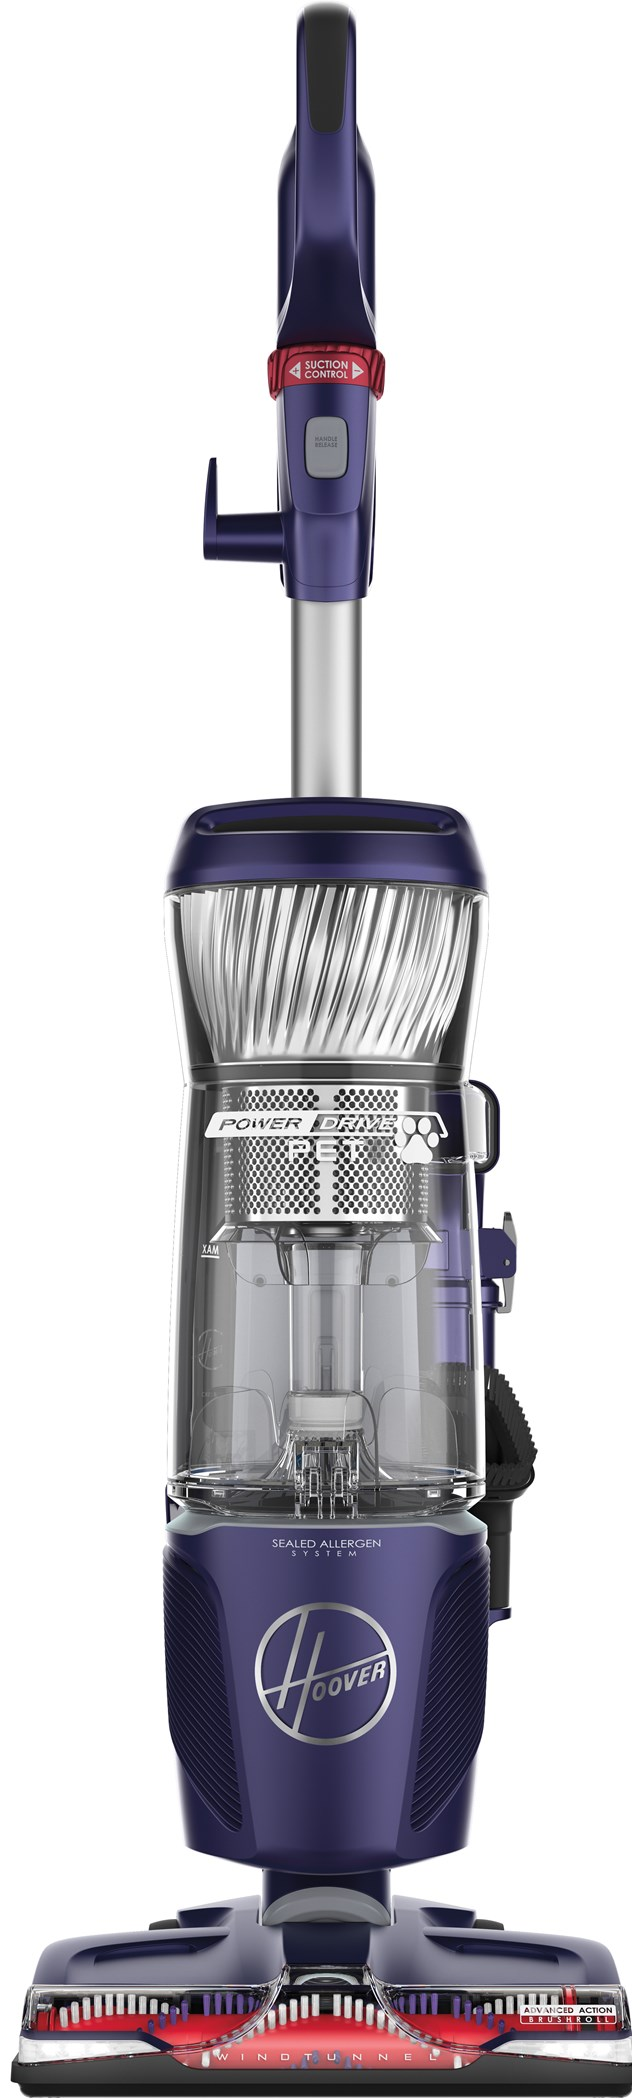 Hoover PowerDrive Pet Bagless Upright Vacuum Cleaner UH74210PC